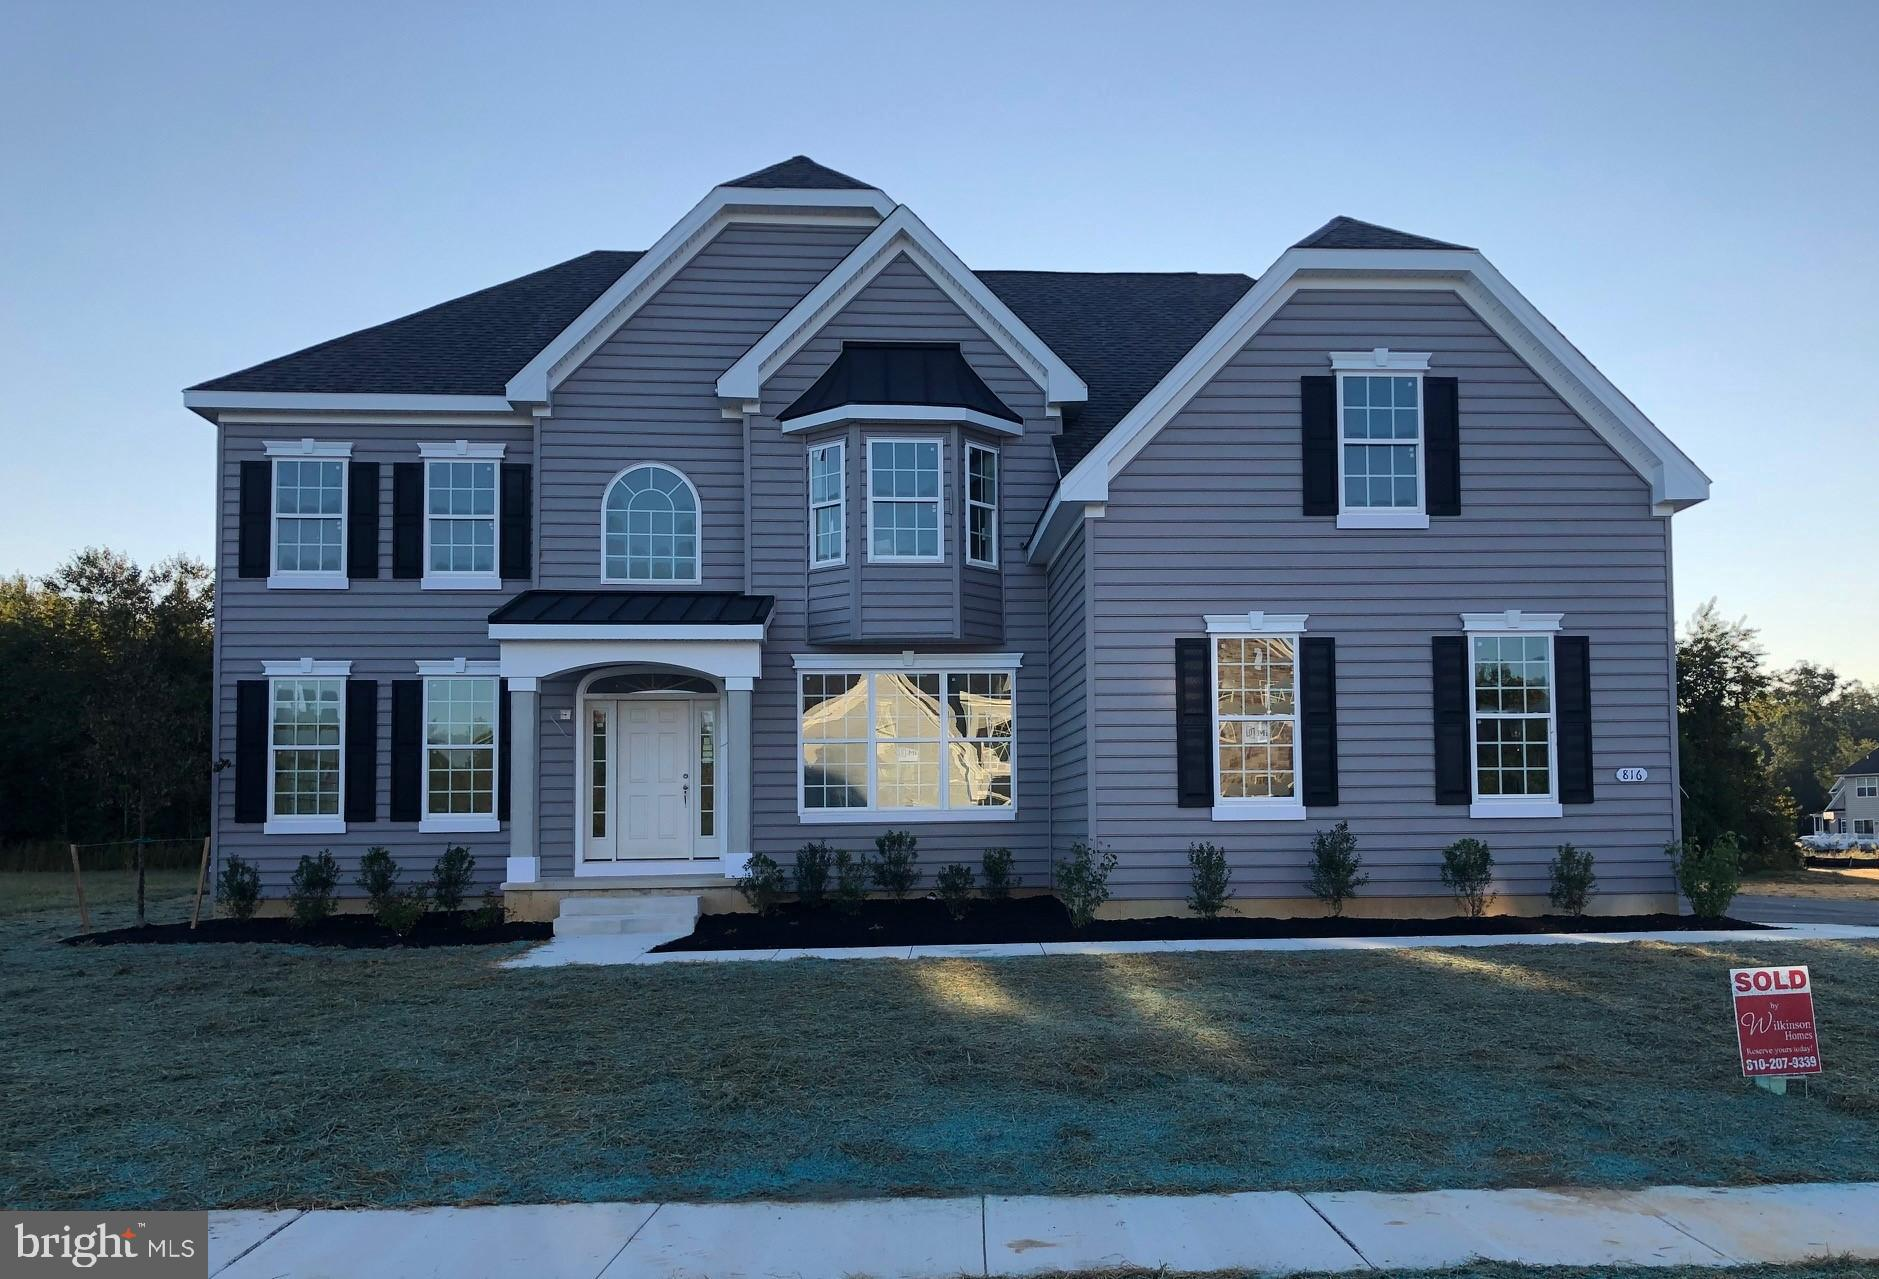 Waterford Chateau on Brookfield lot #28 with 5 bedrooms, 4 Full baths, Gathering Room, Study, 3 car garage and much more.  AOS 2/14/21